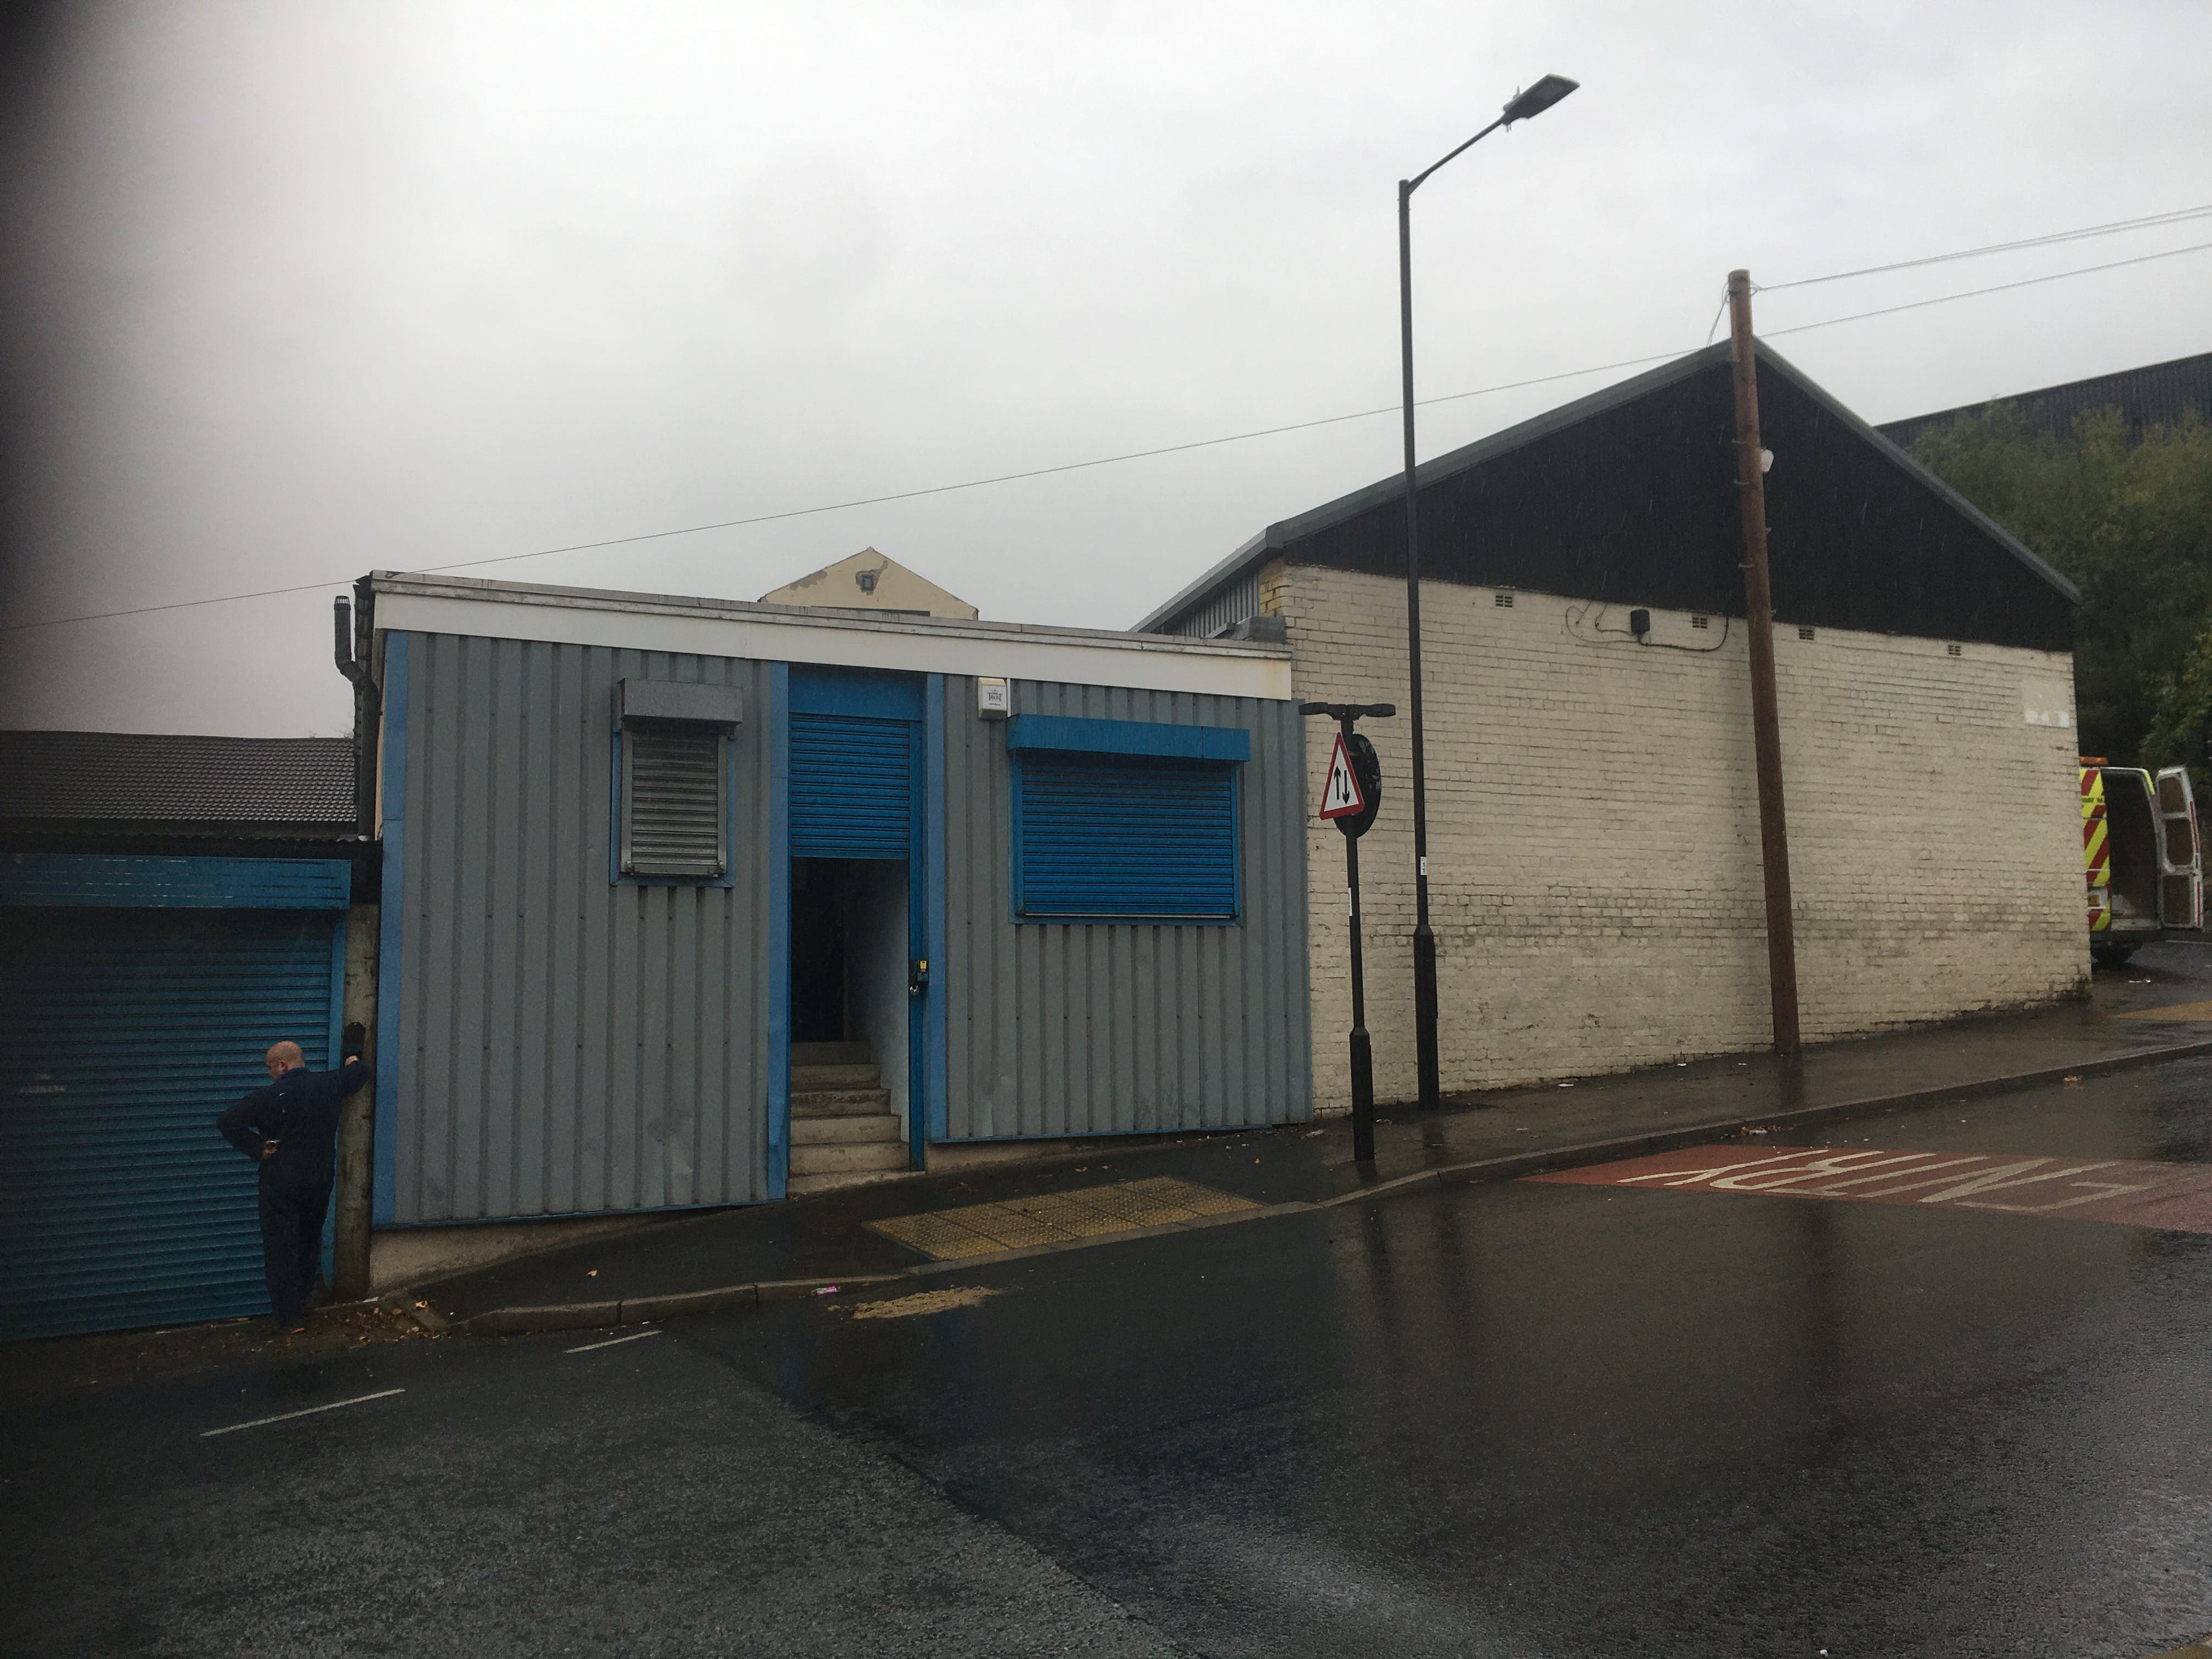 84 Clun Street, Sheffield, Warehouse & Industrial To Let / For Sale - IMG_8710.JPG